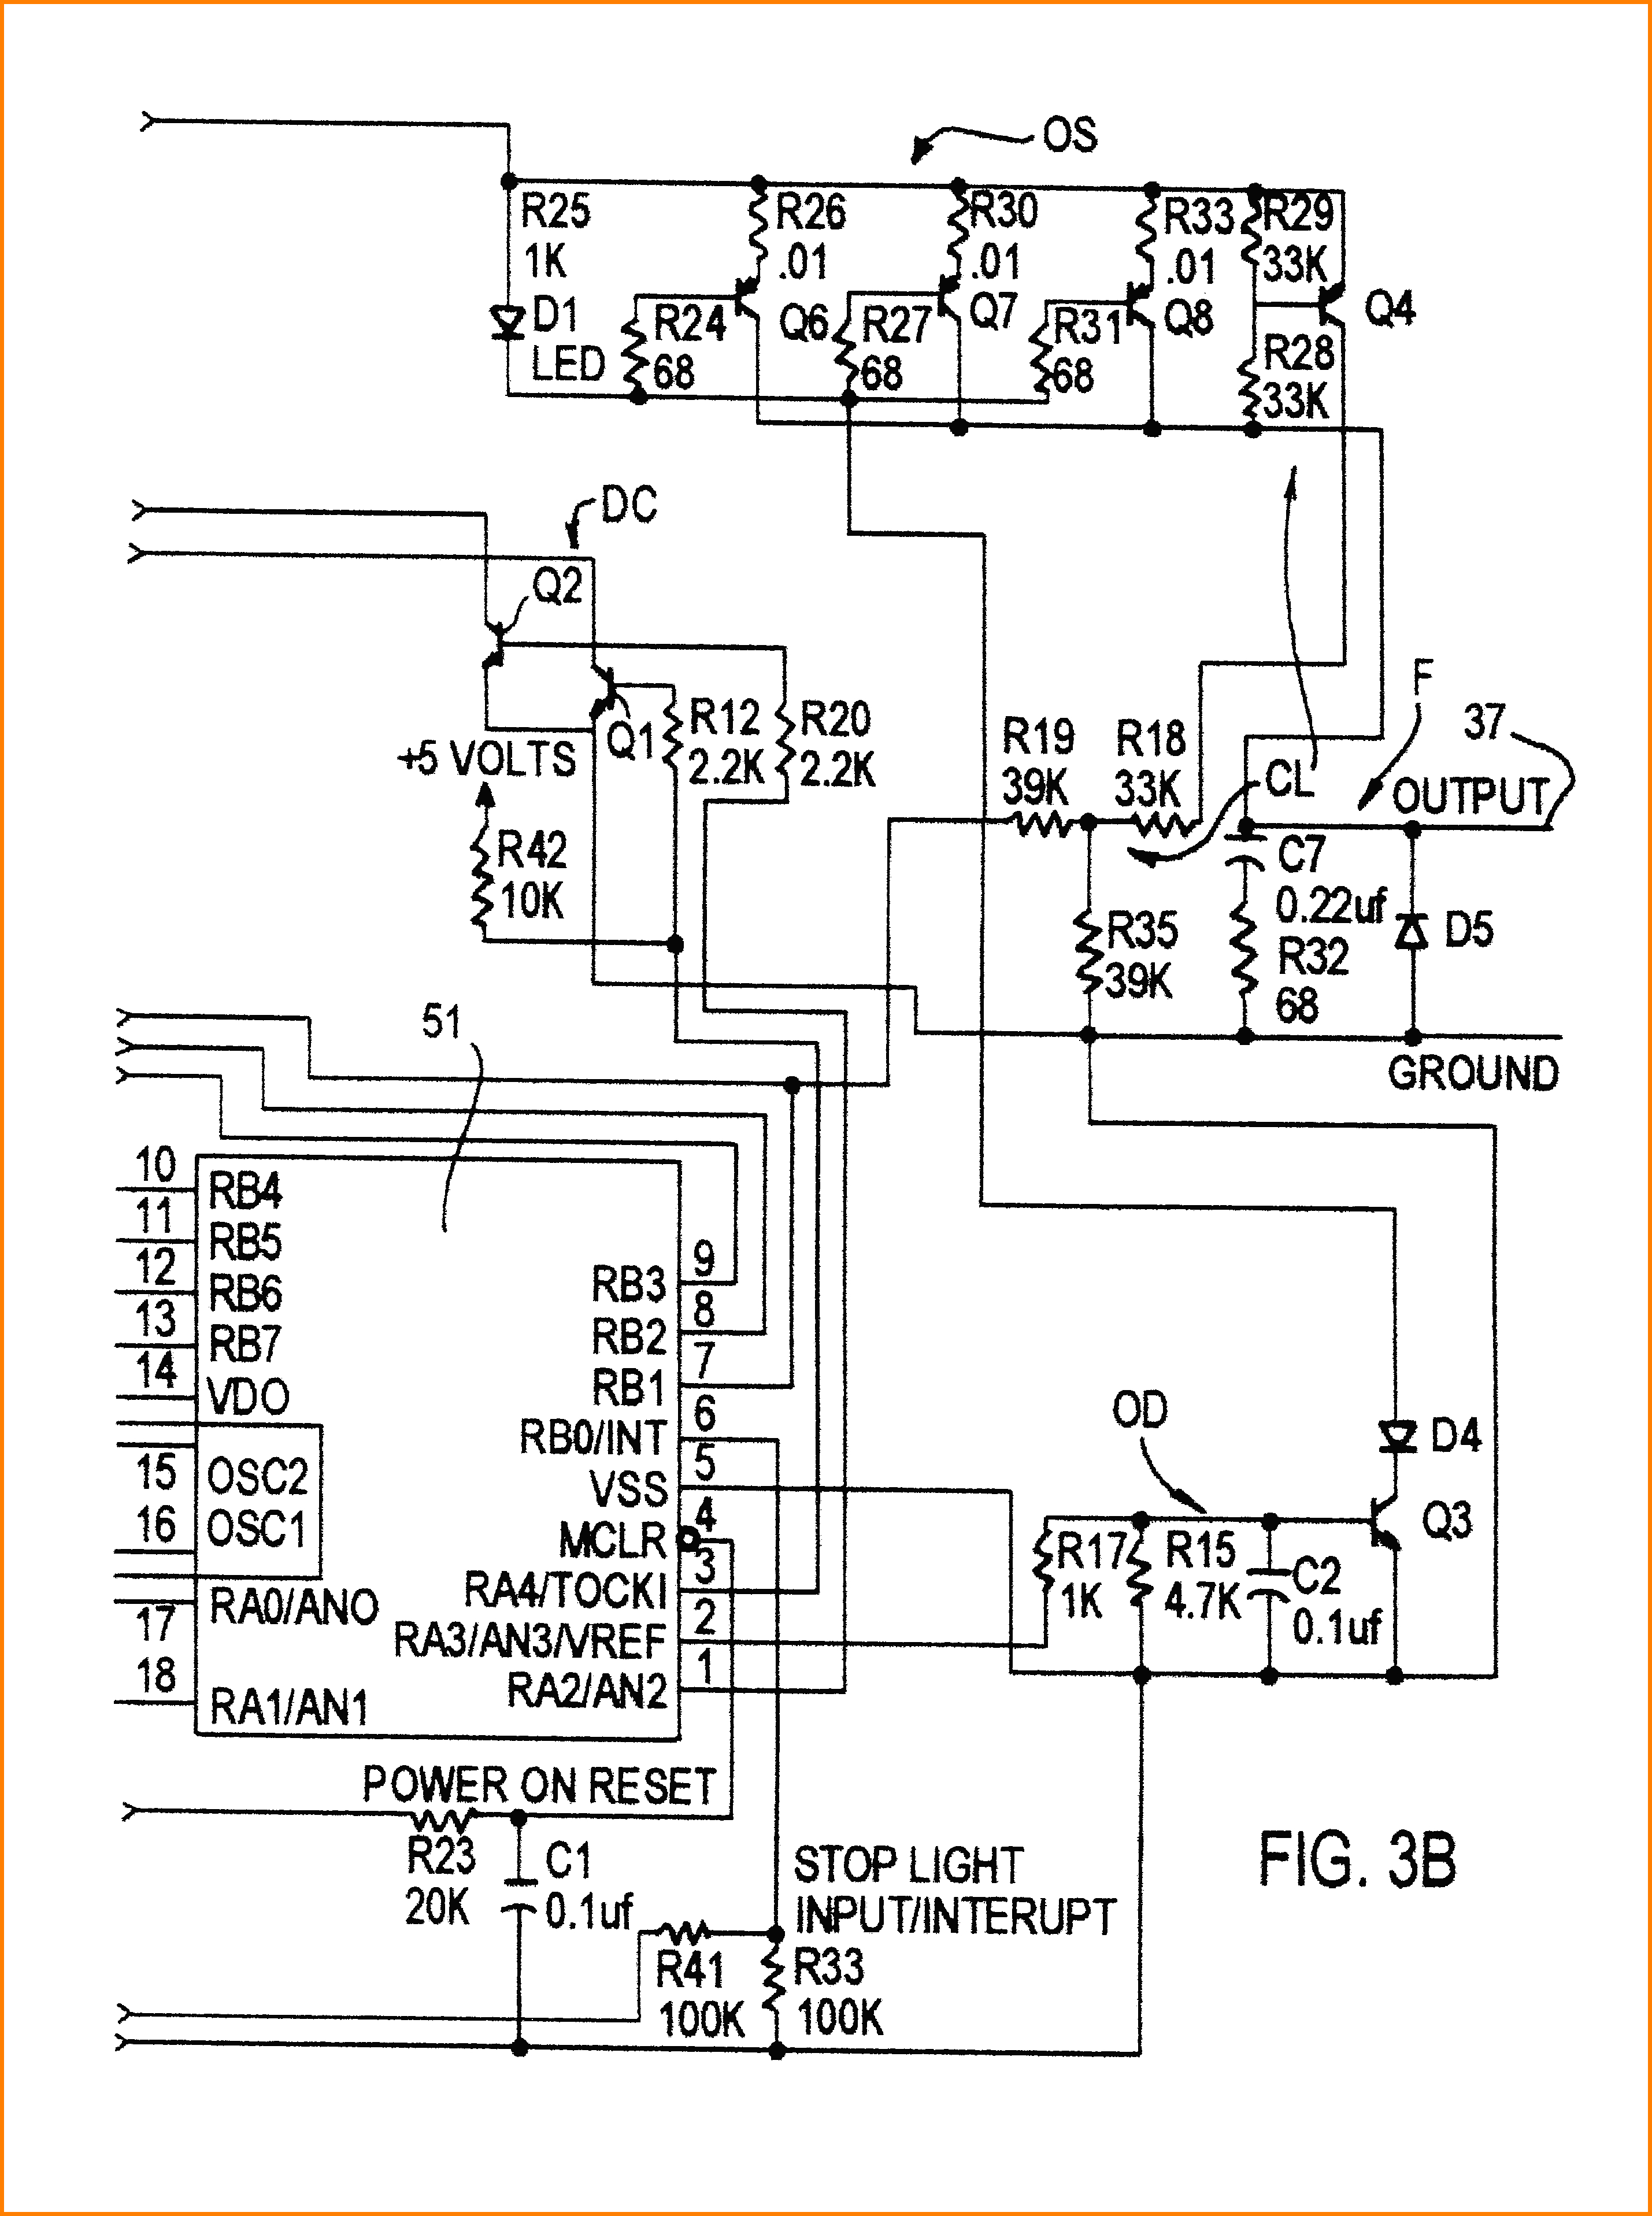 Electric Trailer Brake Wiring Diagram Controller On Maxresdefault - Wiring Electric Trailer Brakes Diagram